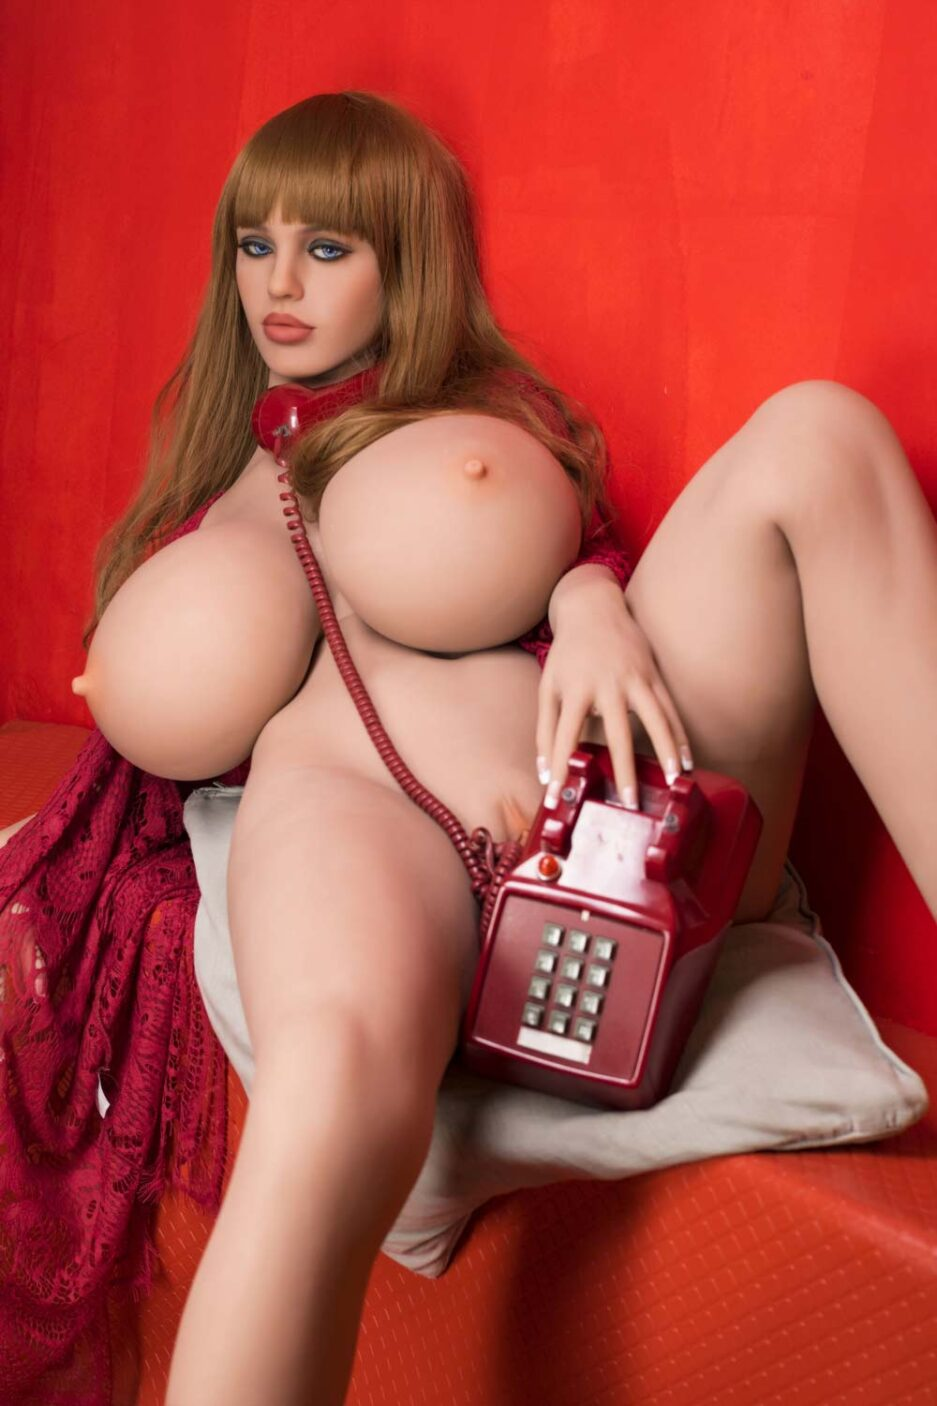 Big breasted sex doll with hands on the phone